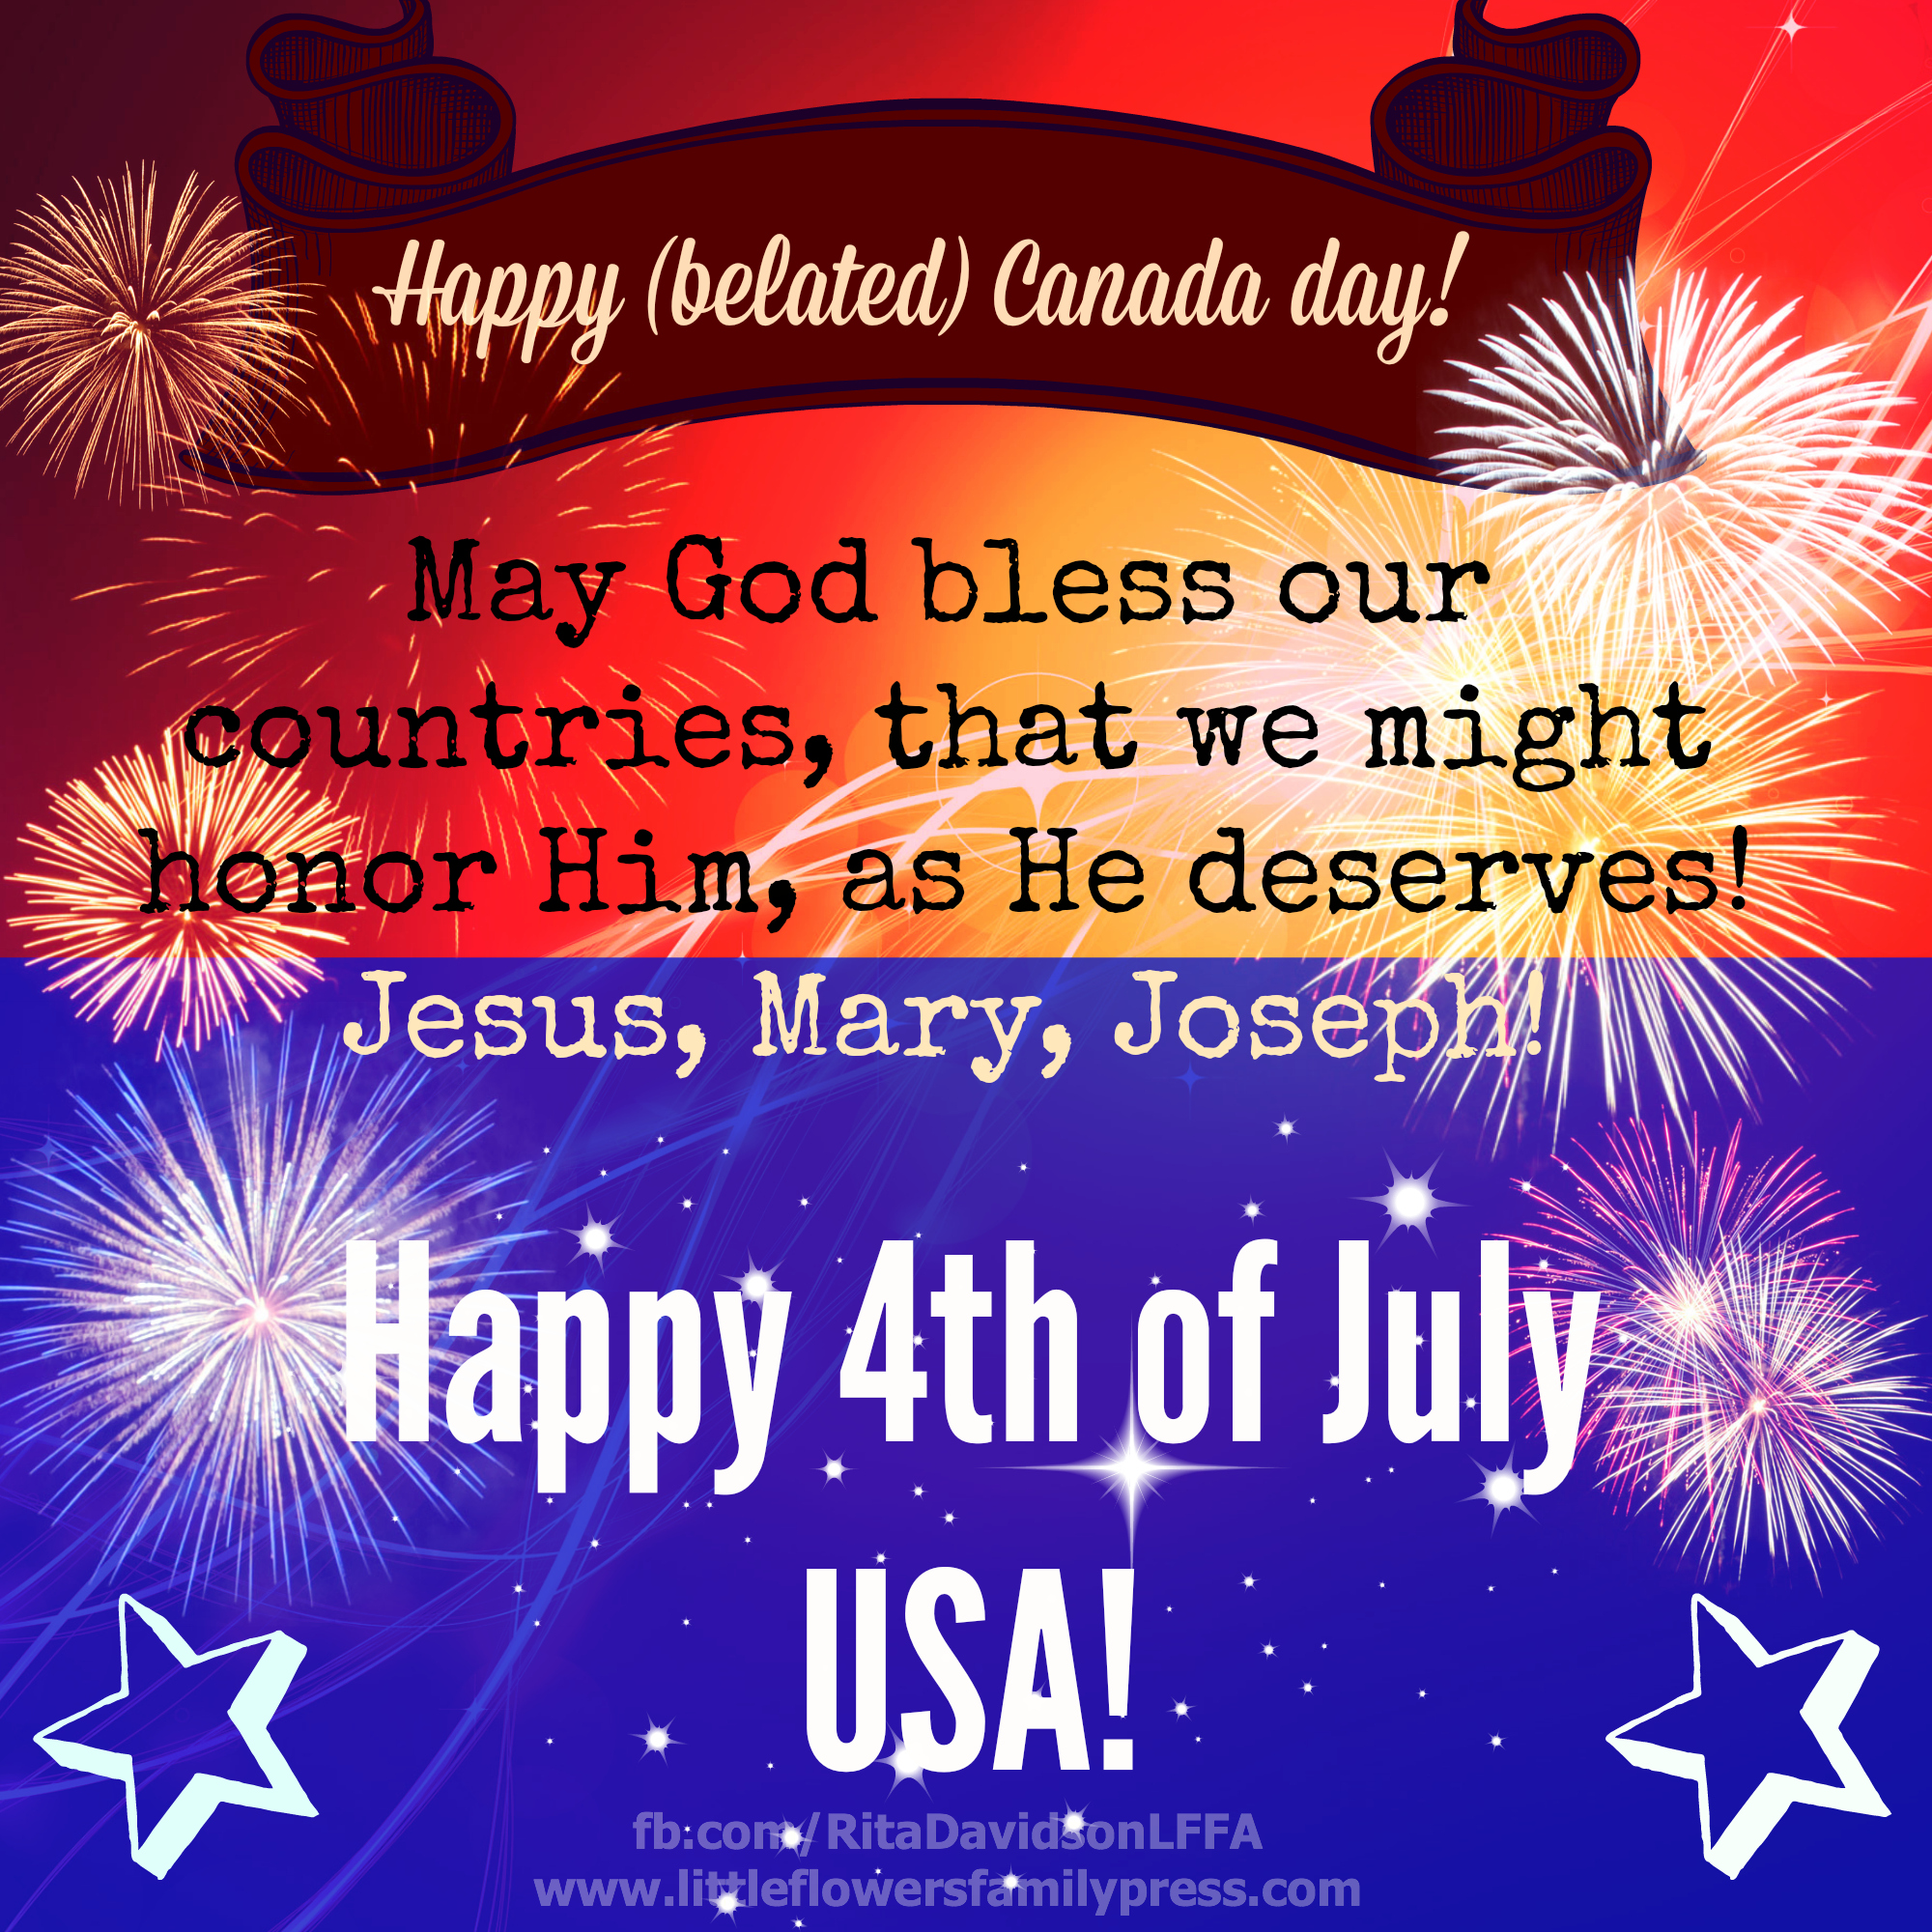 CanadaUSA DAY May God bless our countries!